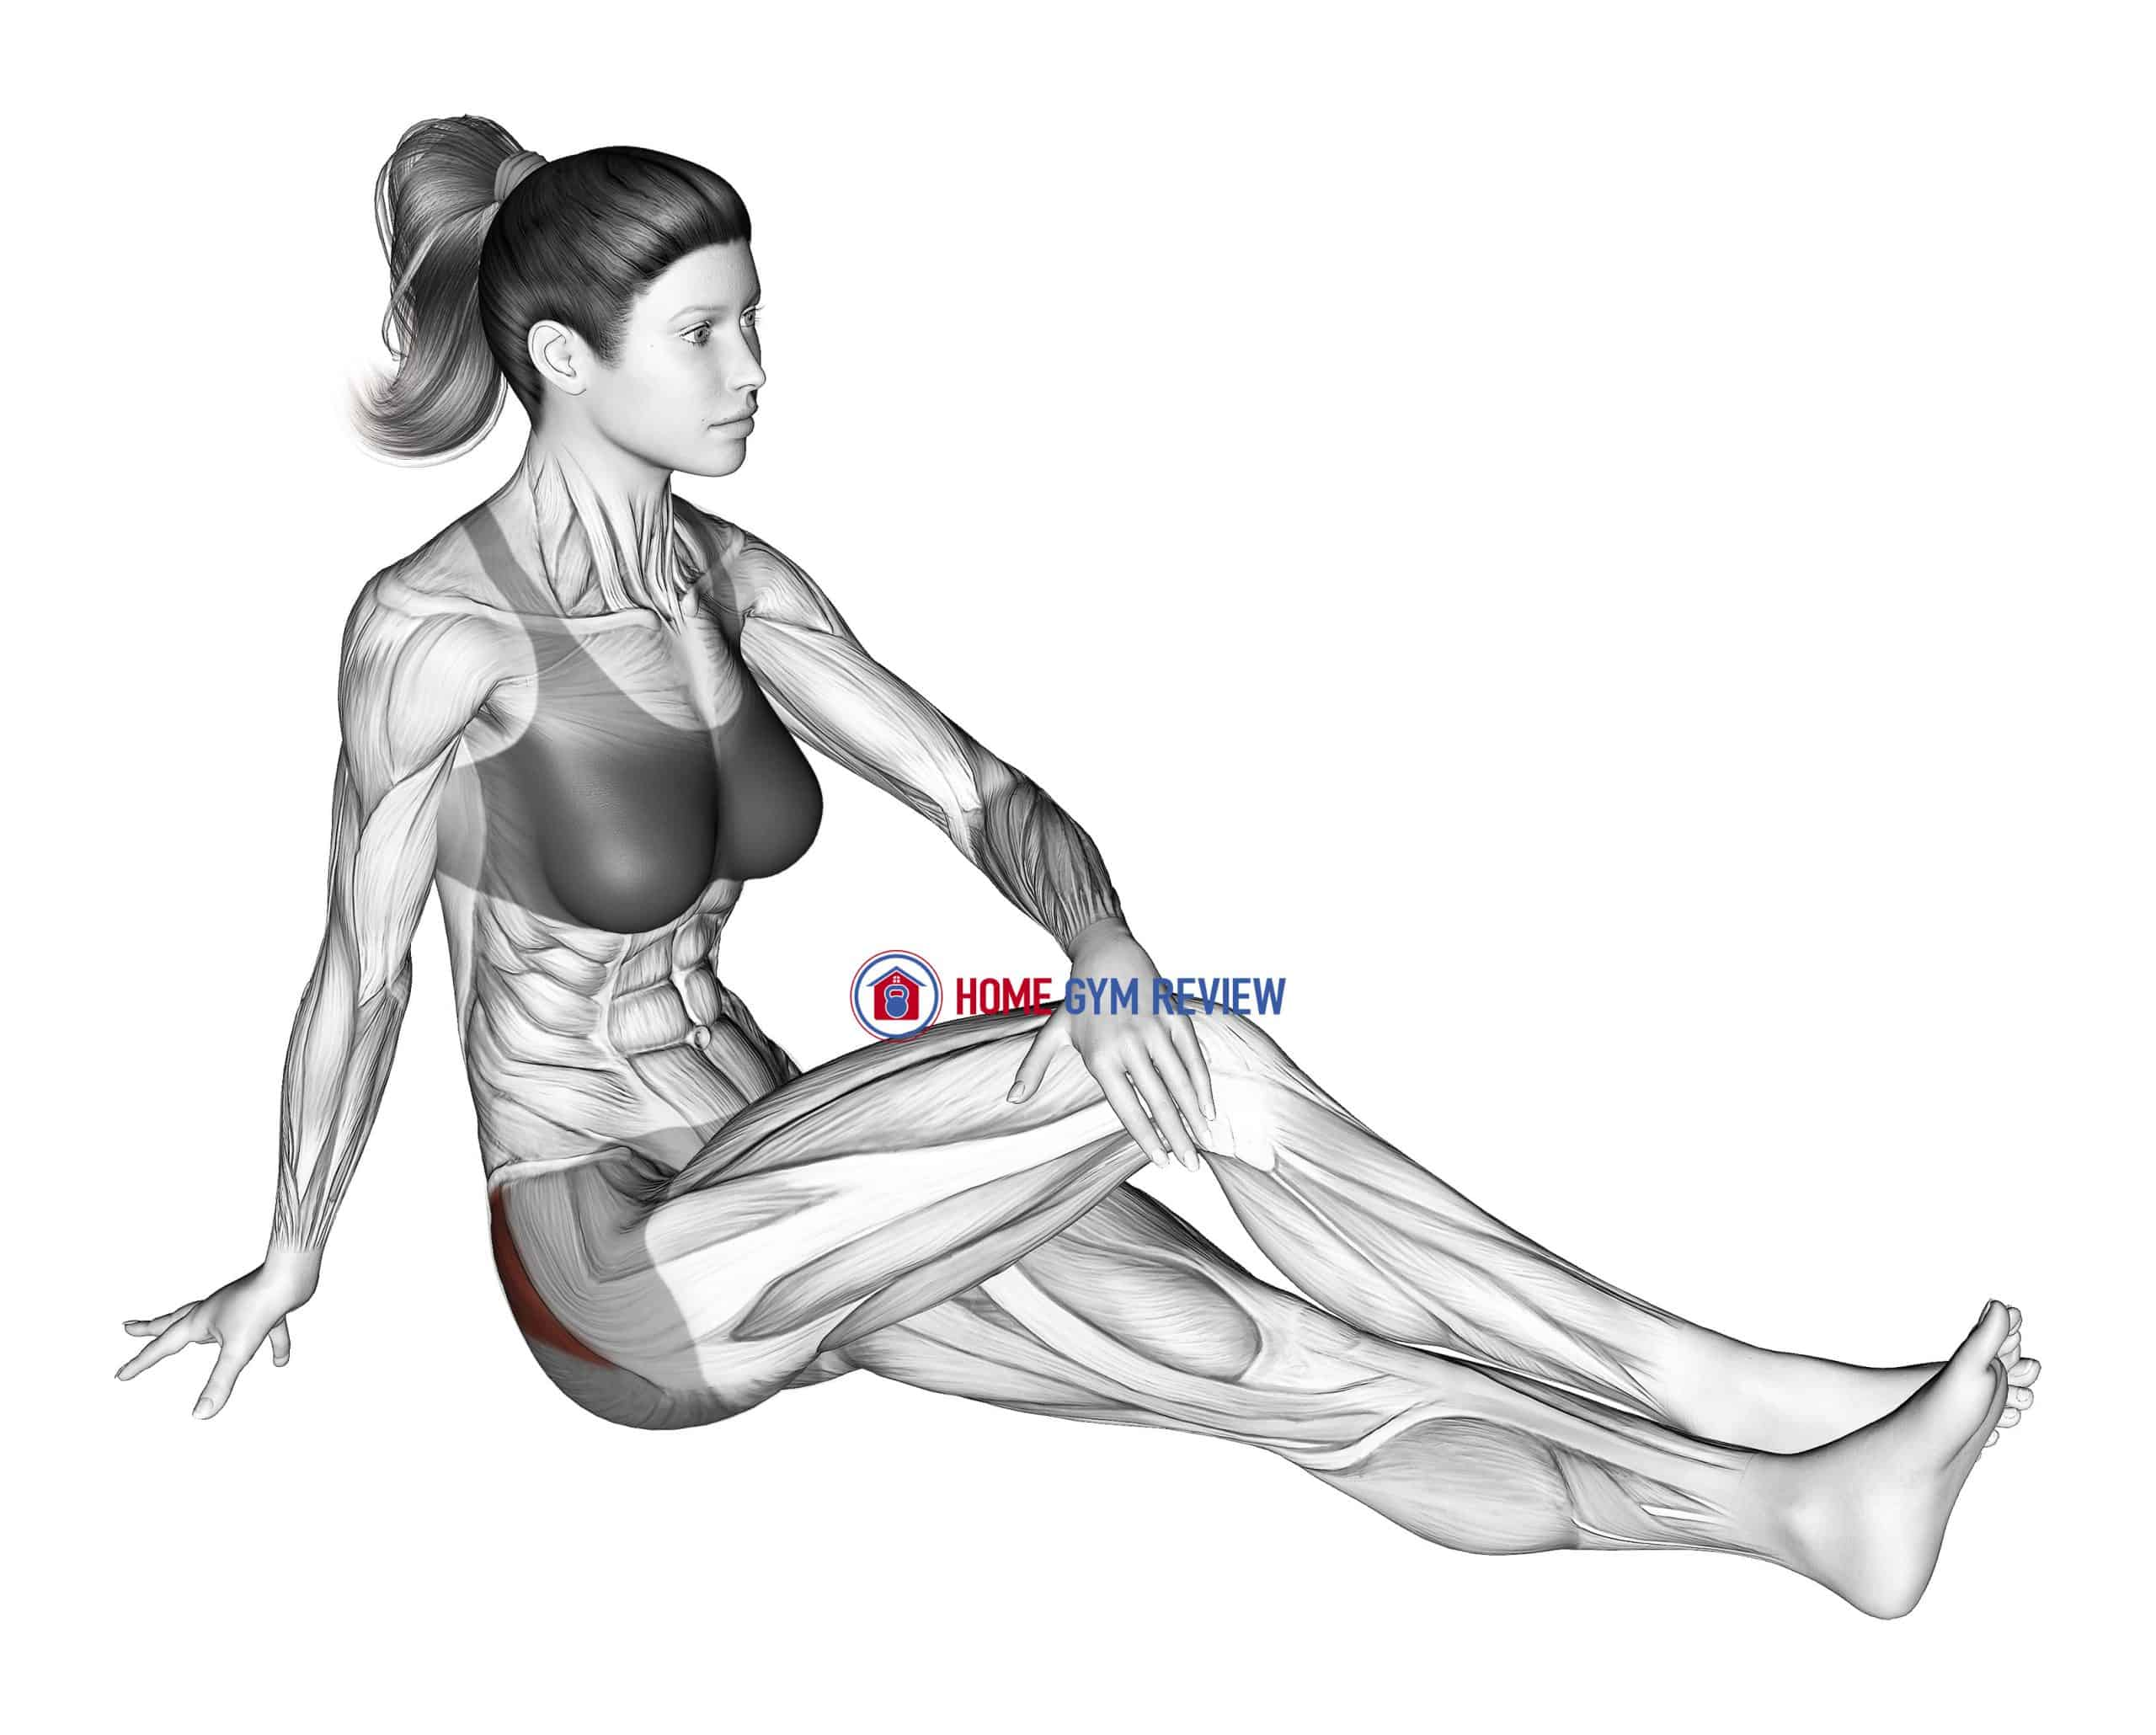 Seated Hip Stretch With Slightly Bent Leg